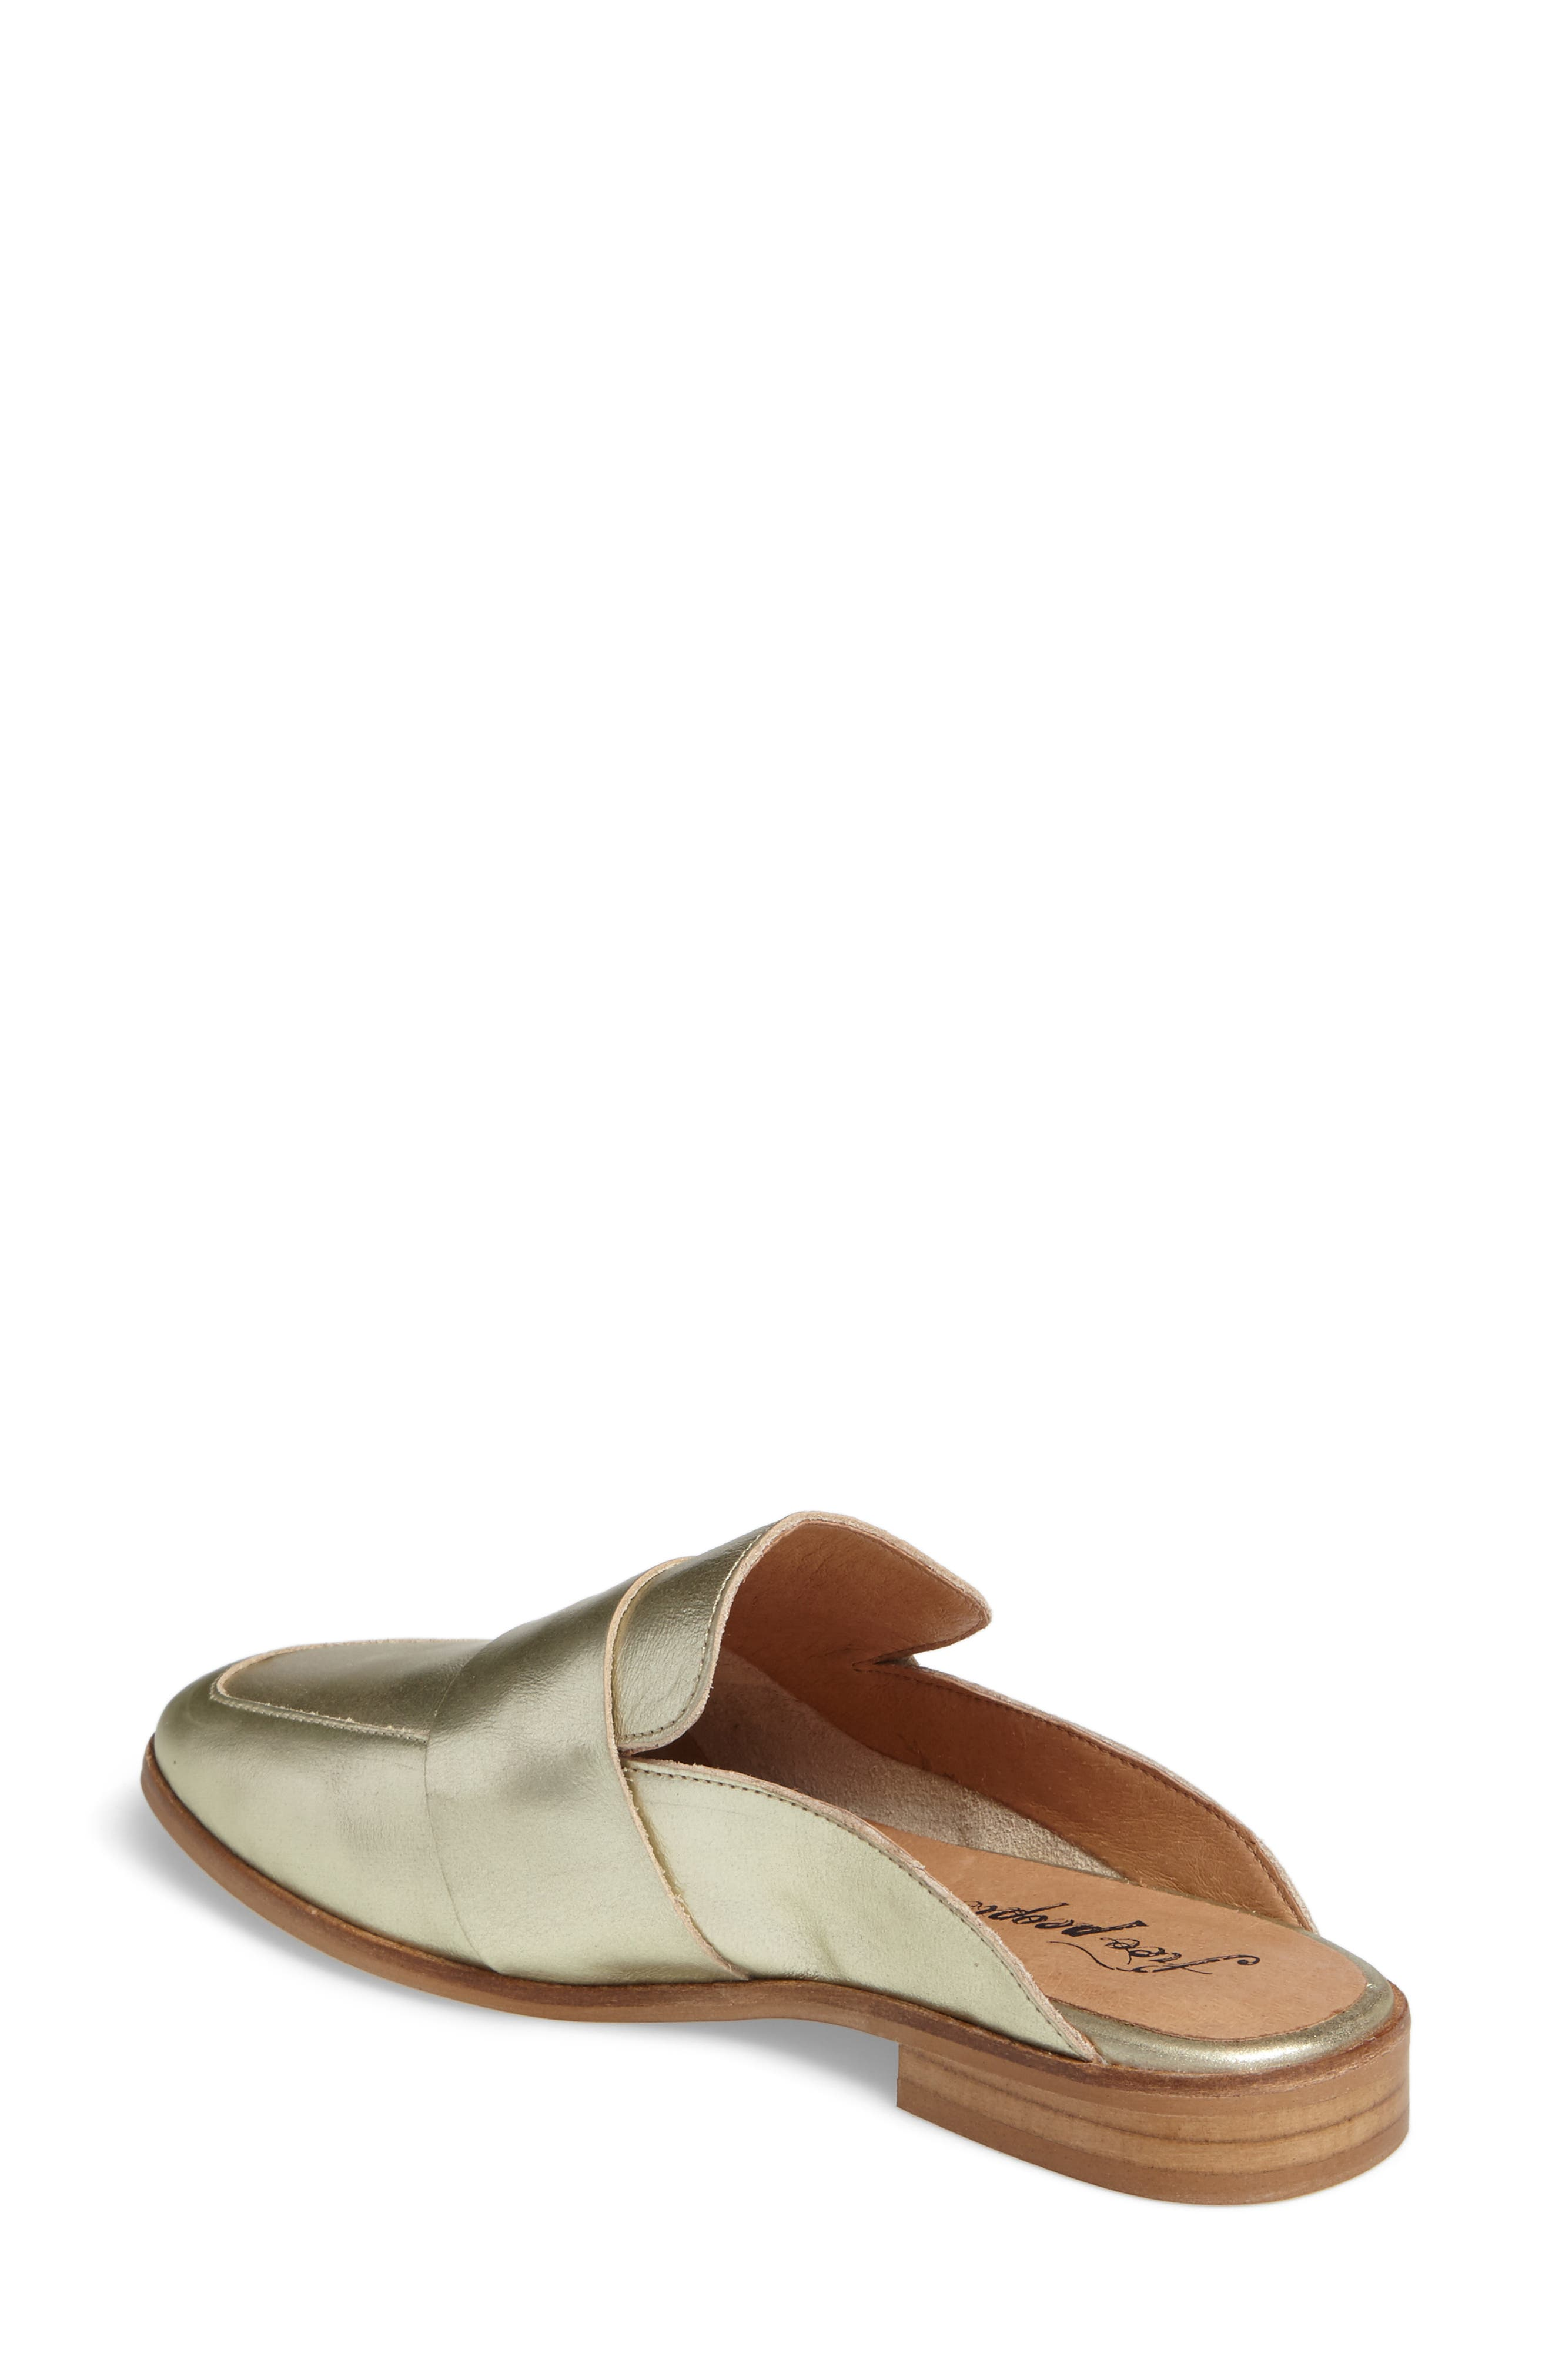 At Ease Loafer Mule,                             Alternate thumbnail 2, color,                             GOLD LEATHER